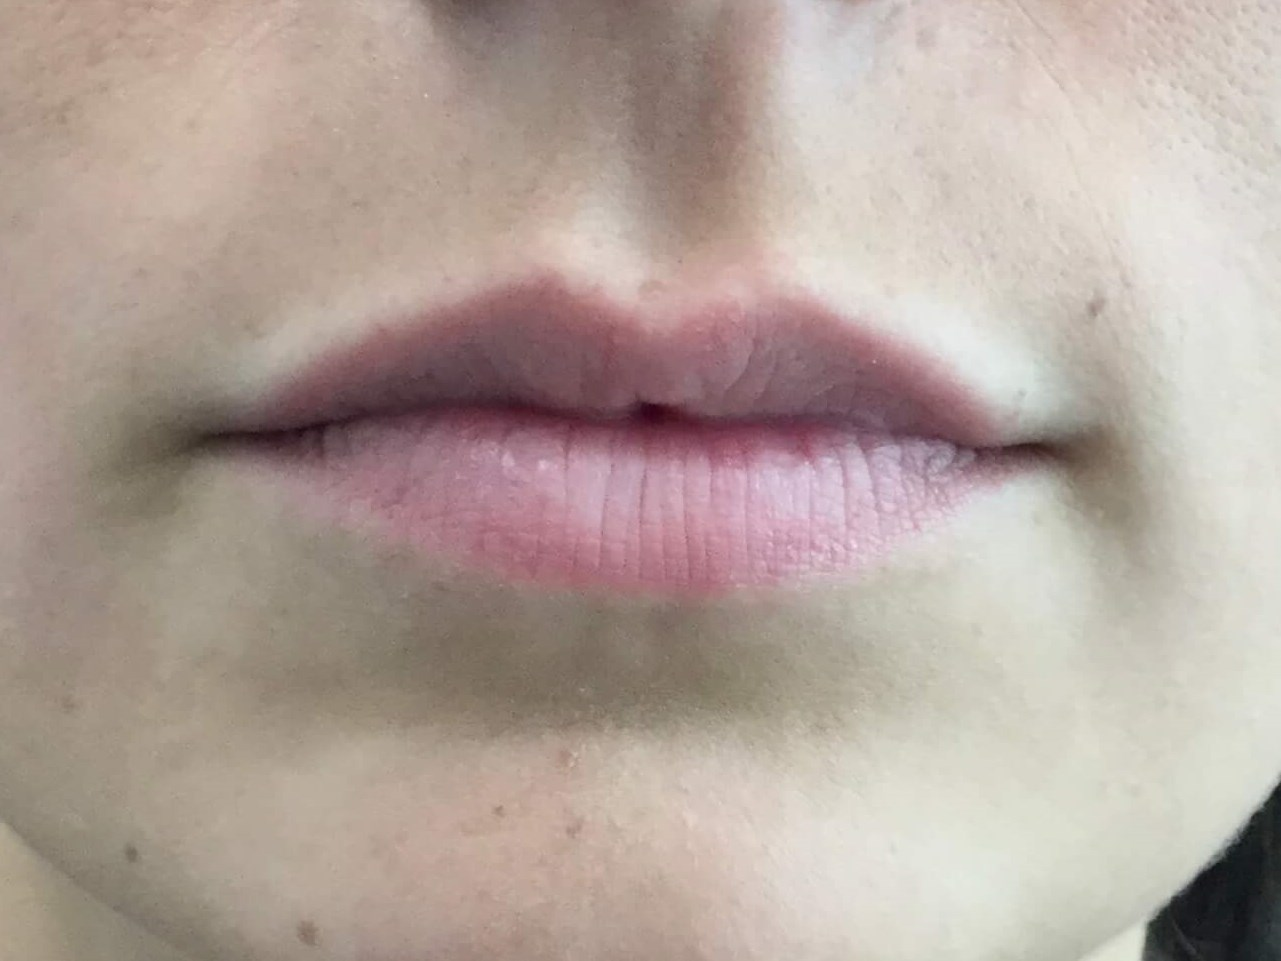 DALLAS WOMAN HAS LIP AUGMENTATION WITH JUVEDERM VOLLURE